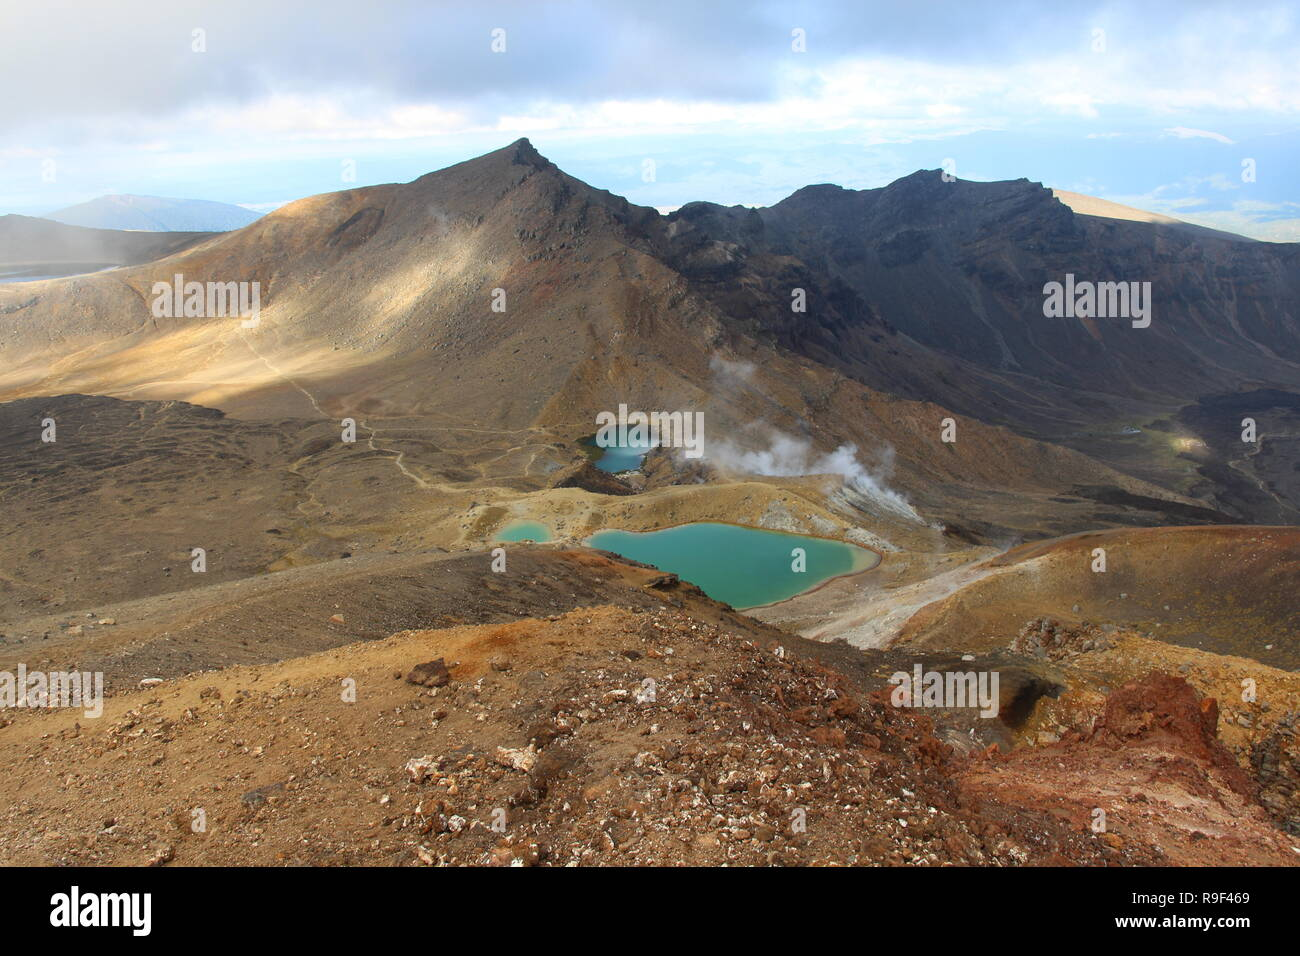 Blue Lakes in the mountains - Stock Image